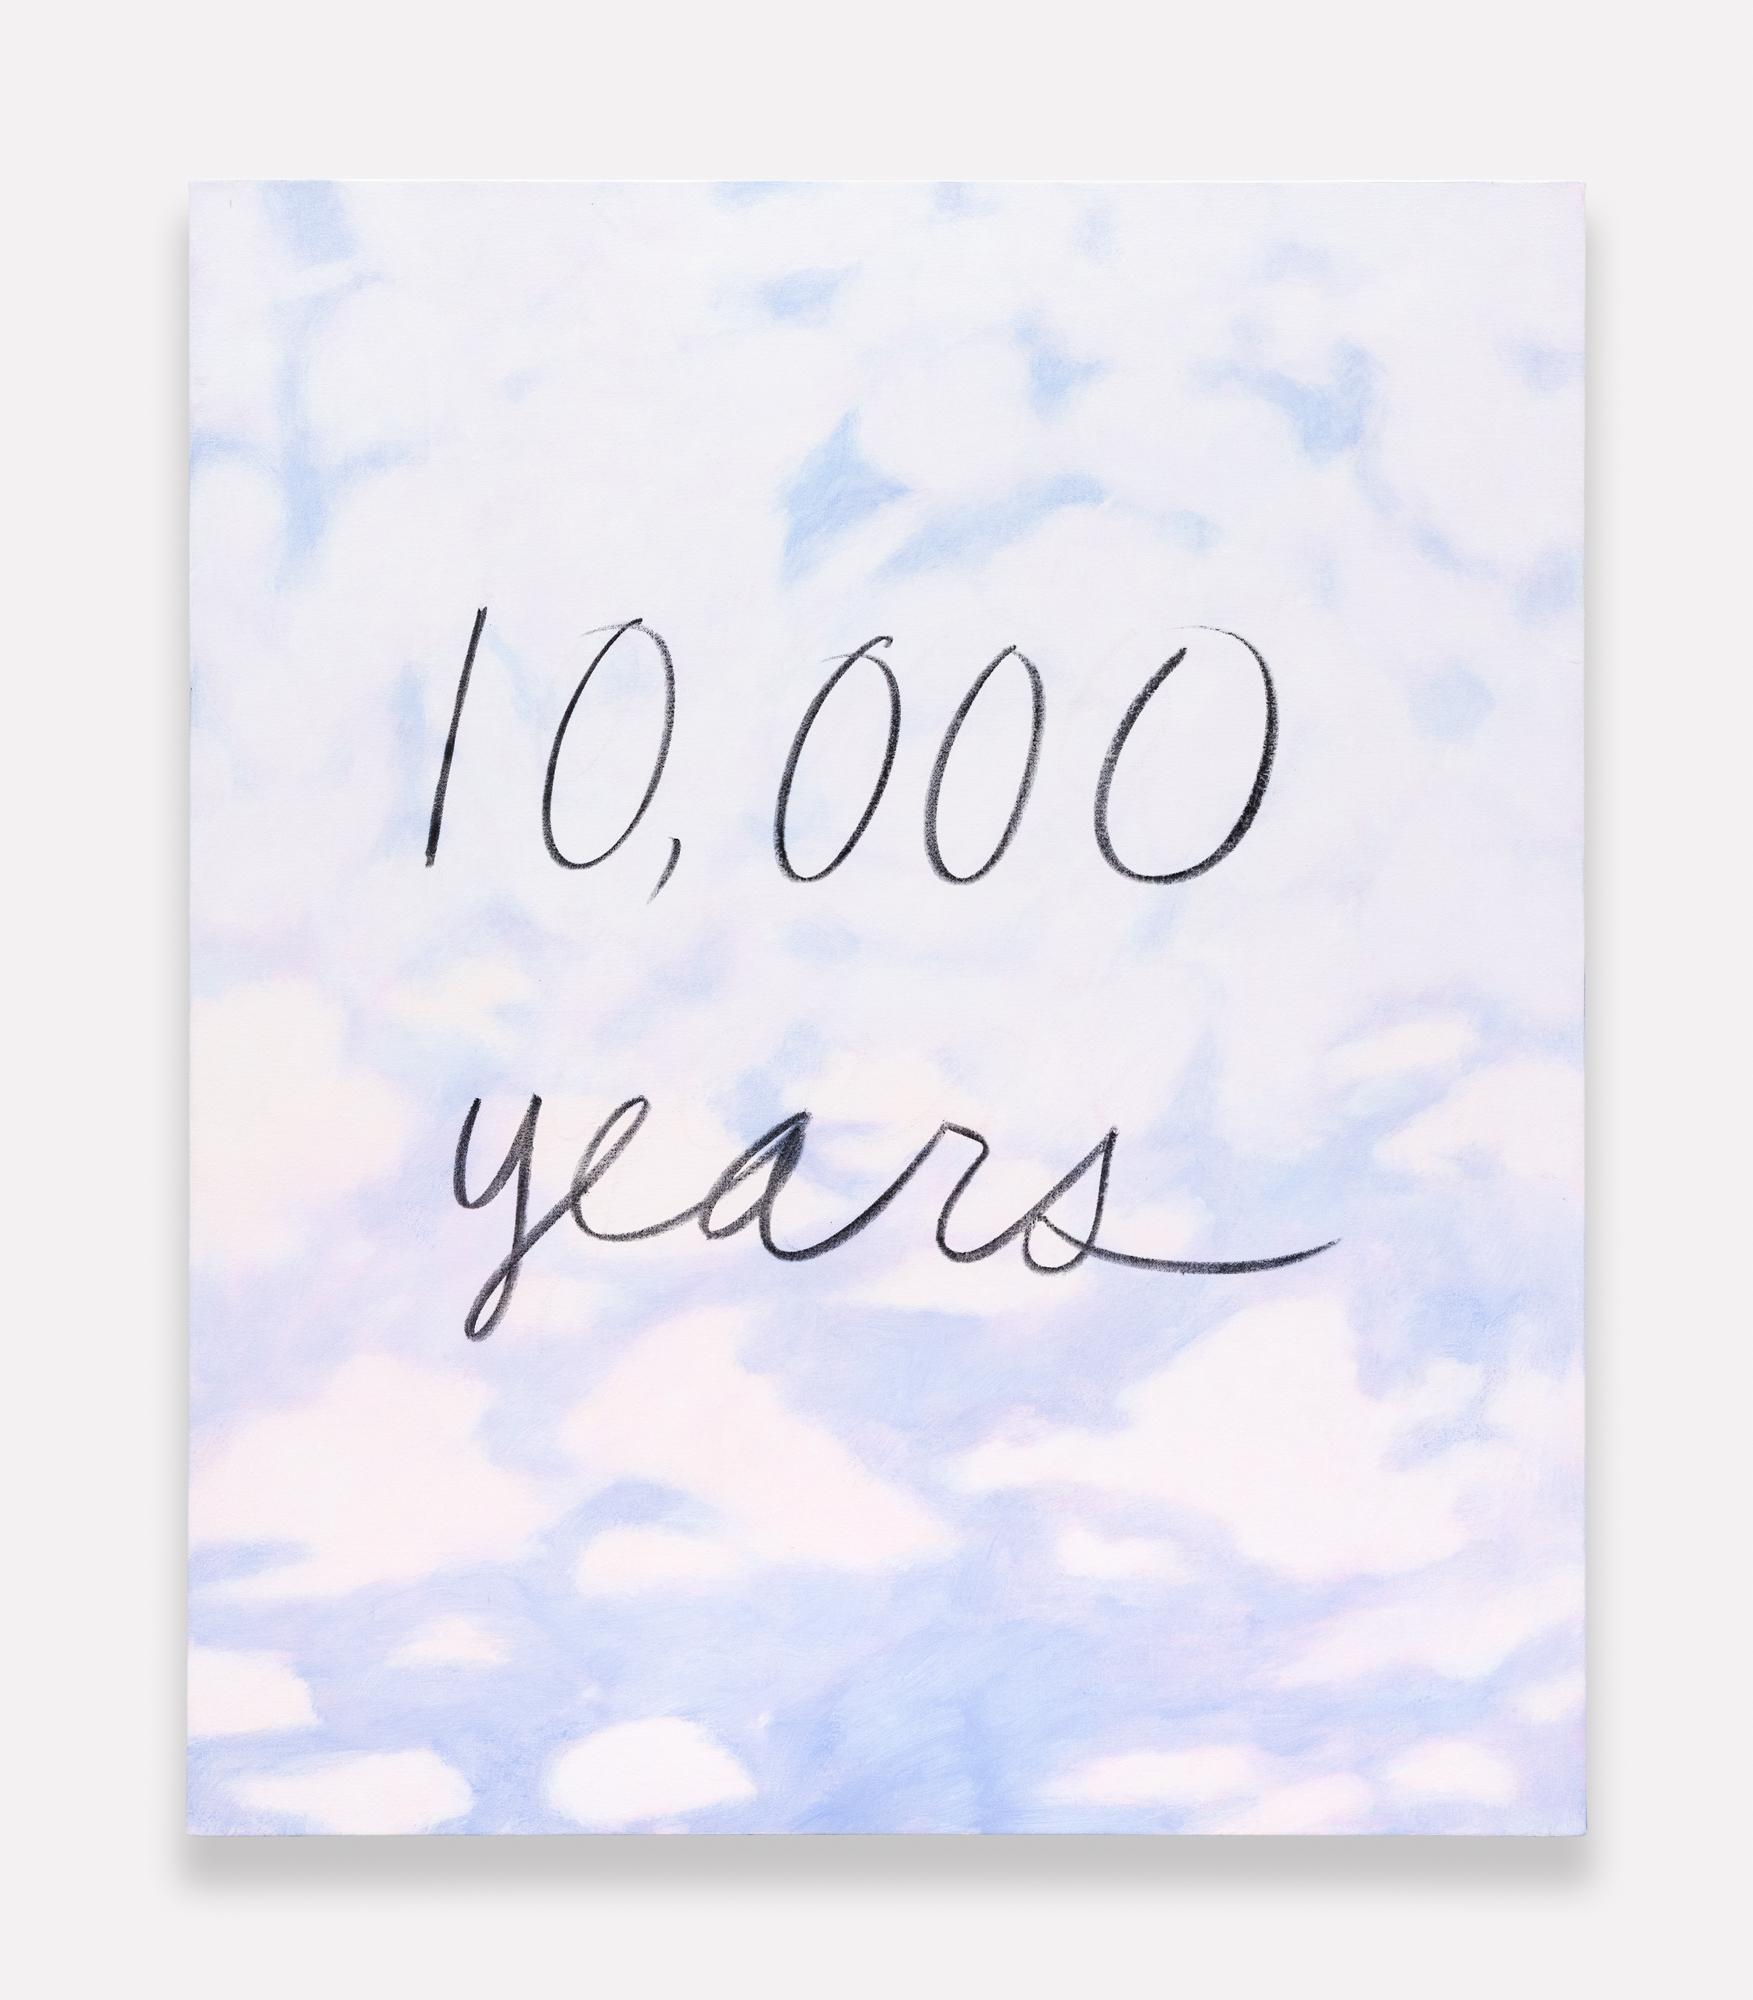 """On a background of soft pink and purple clouds, """"10,000 years"""" is written in cursive letters with a black smudged material."""